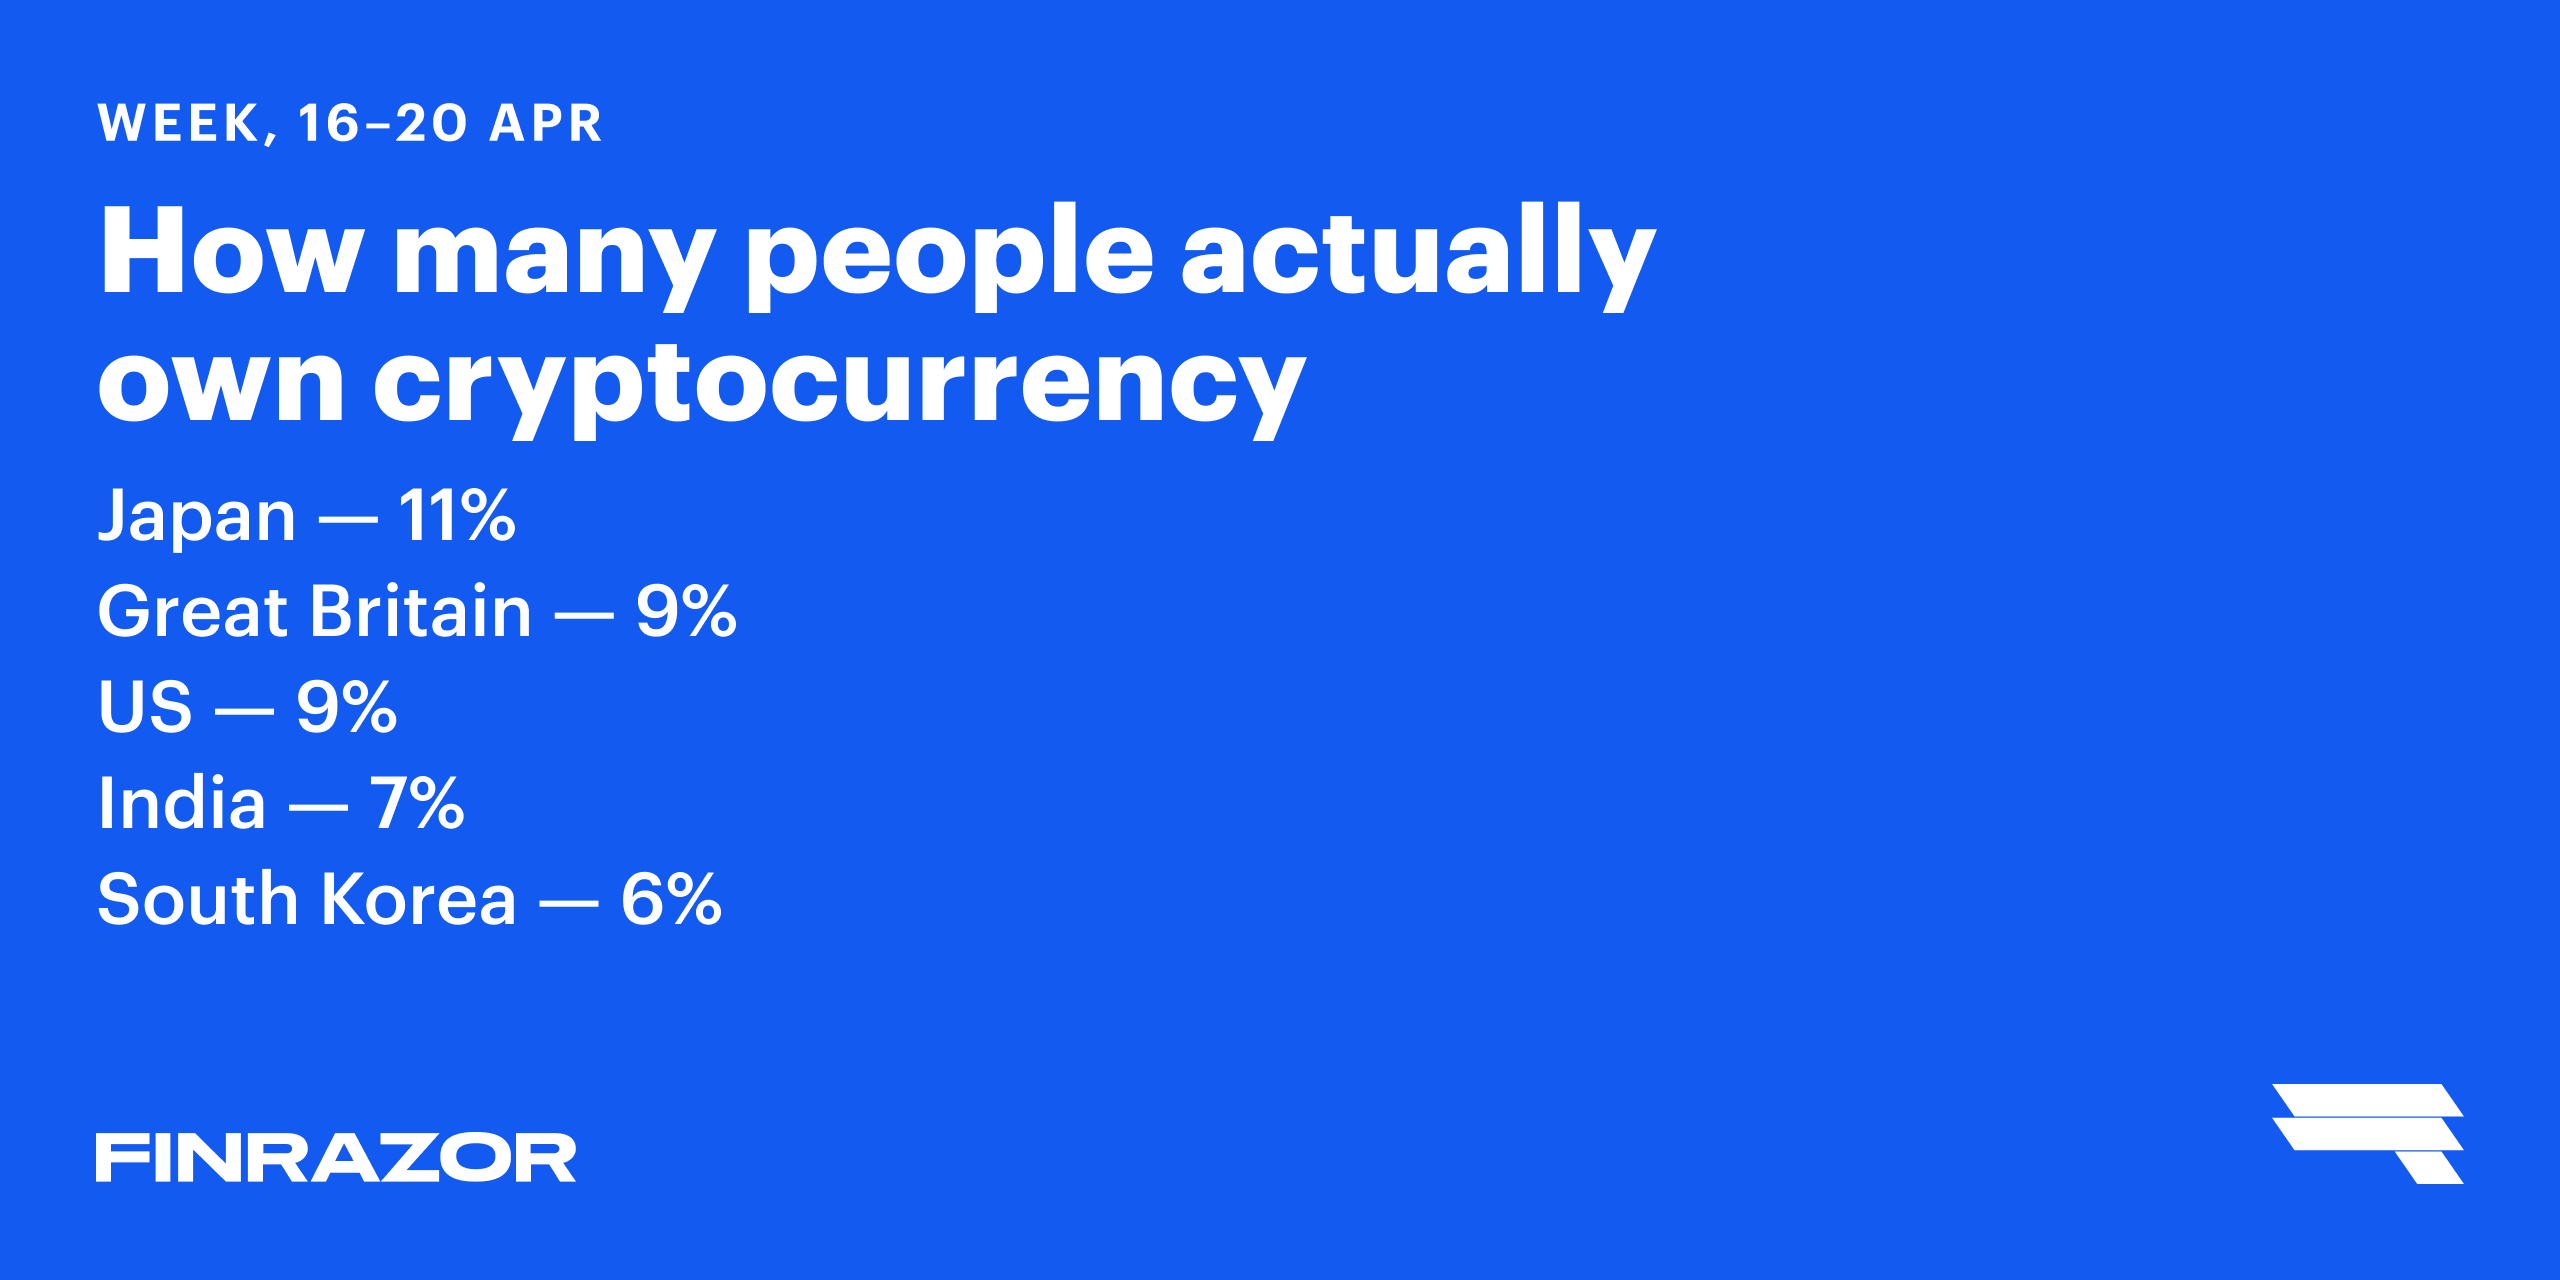 How many people own cryptocurrency